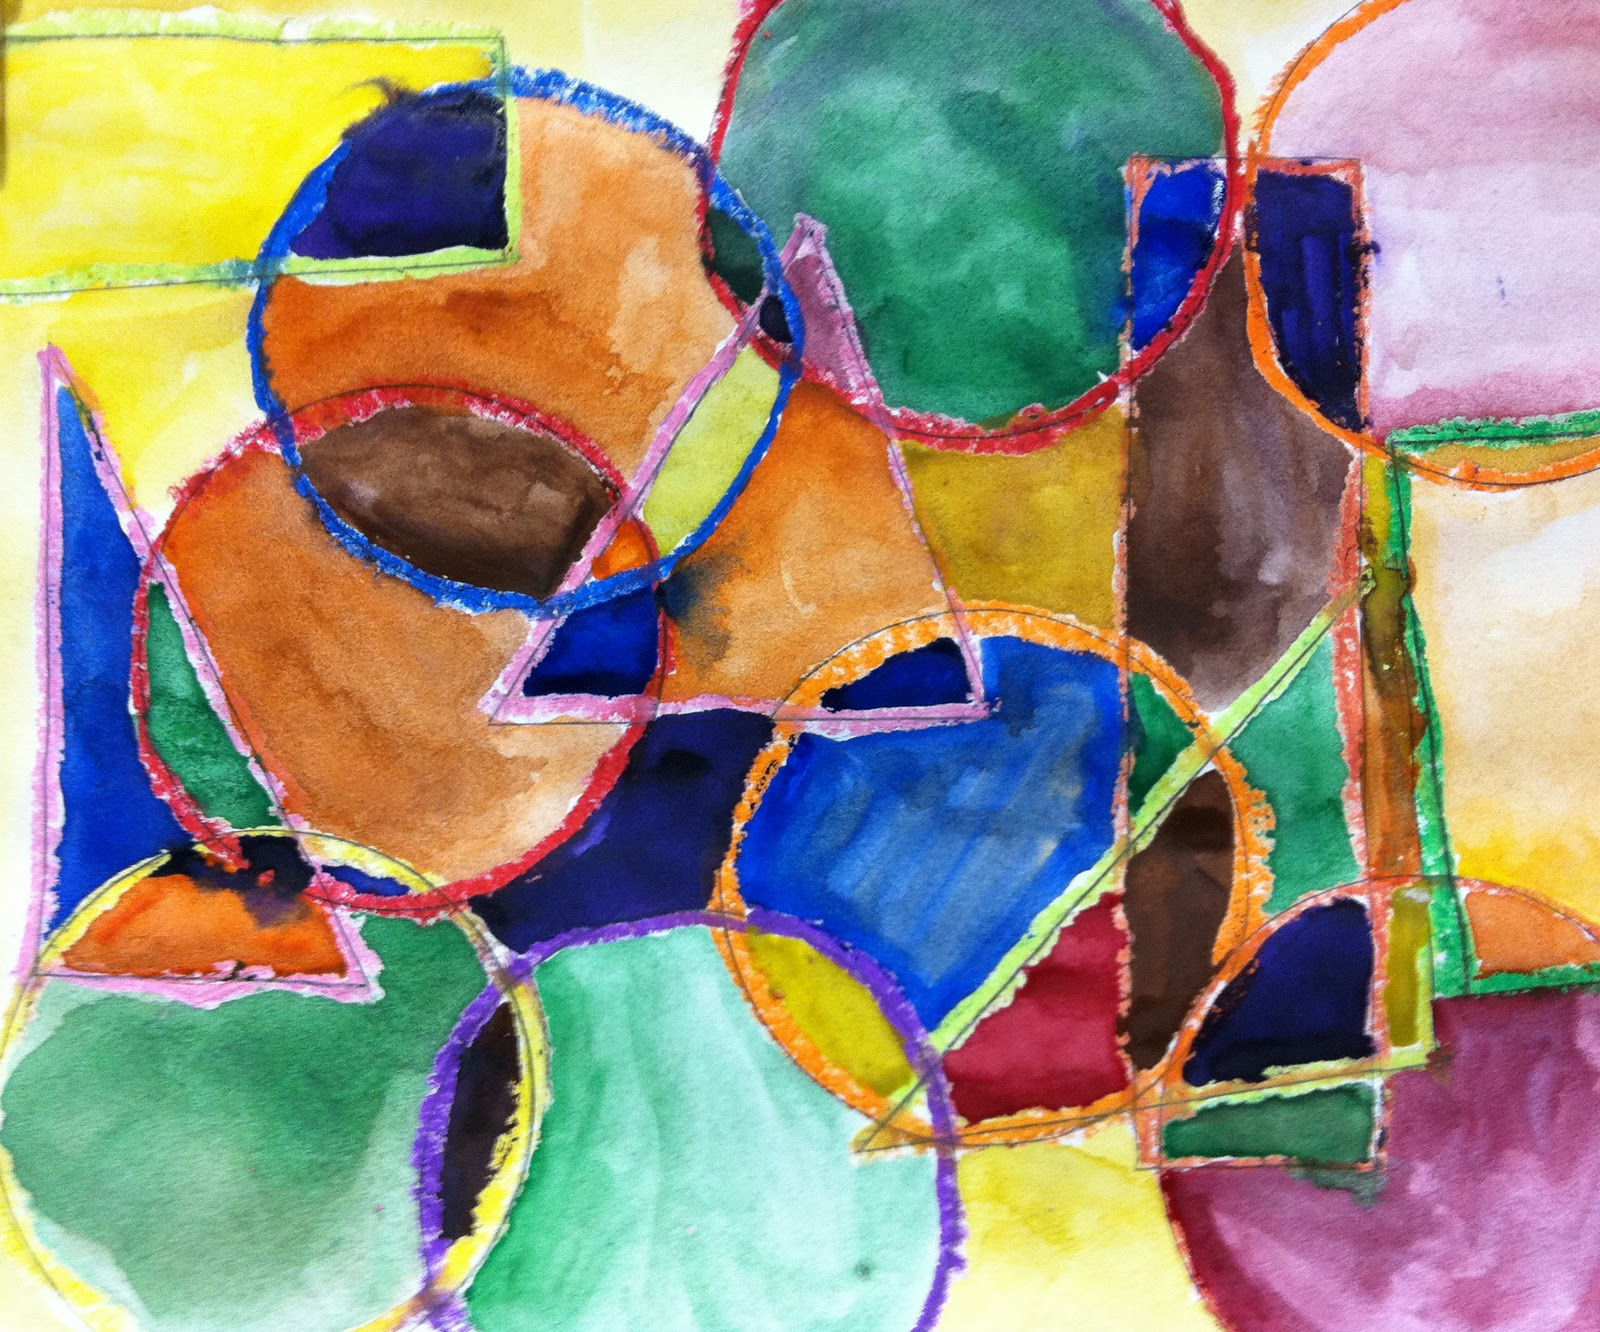 the art room: organic and geometric overlapping shapes